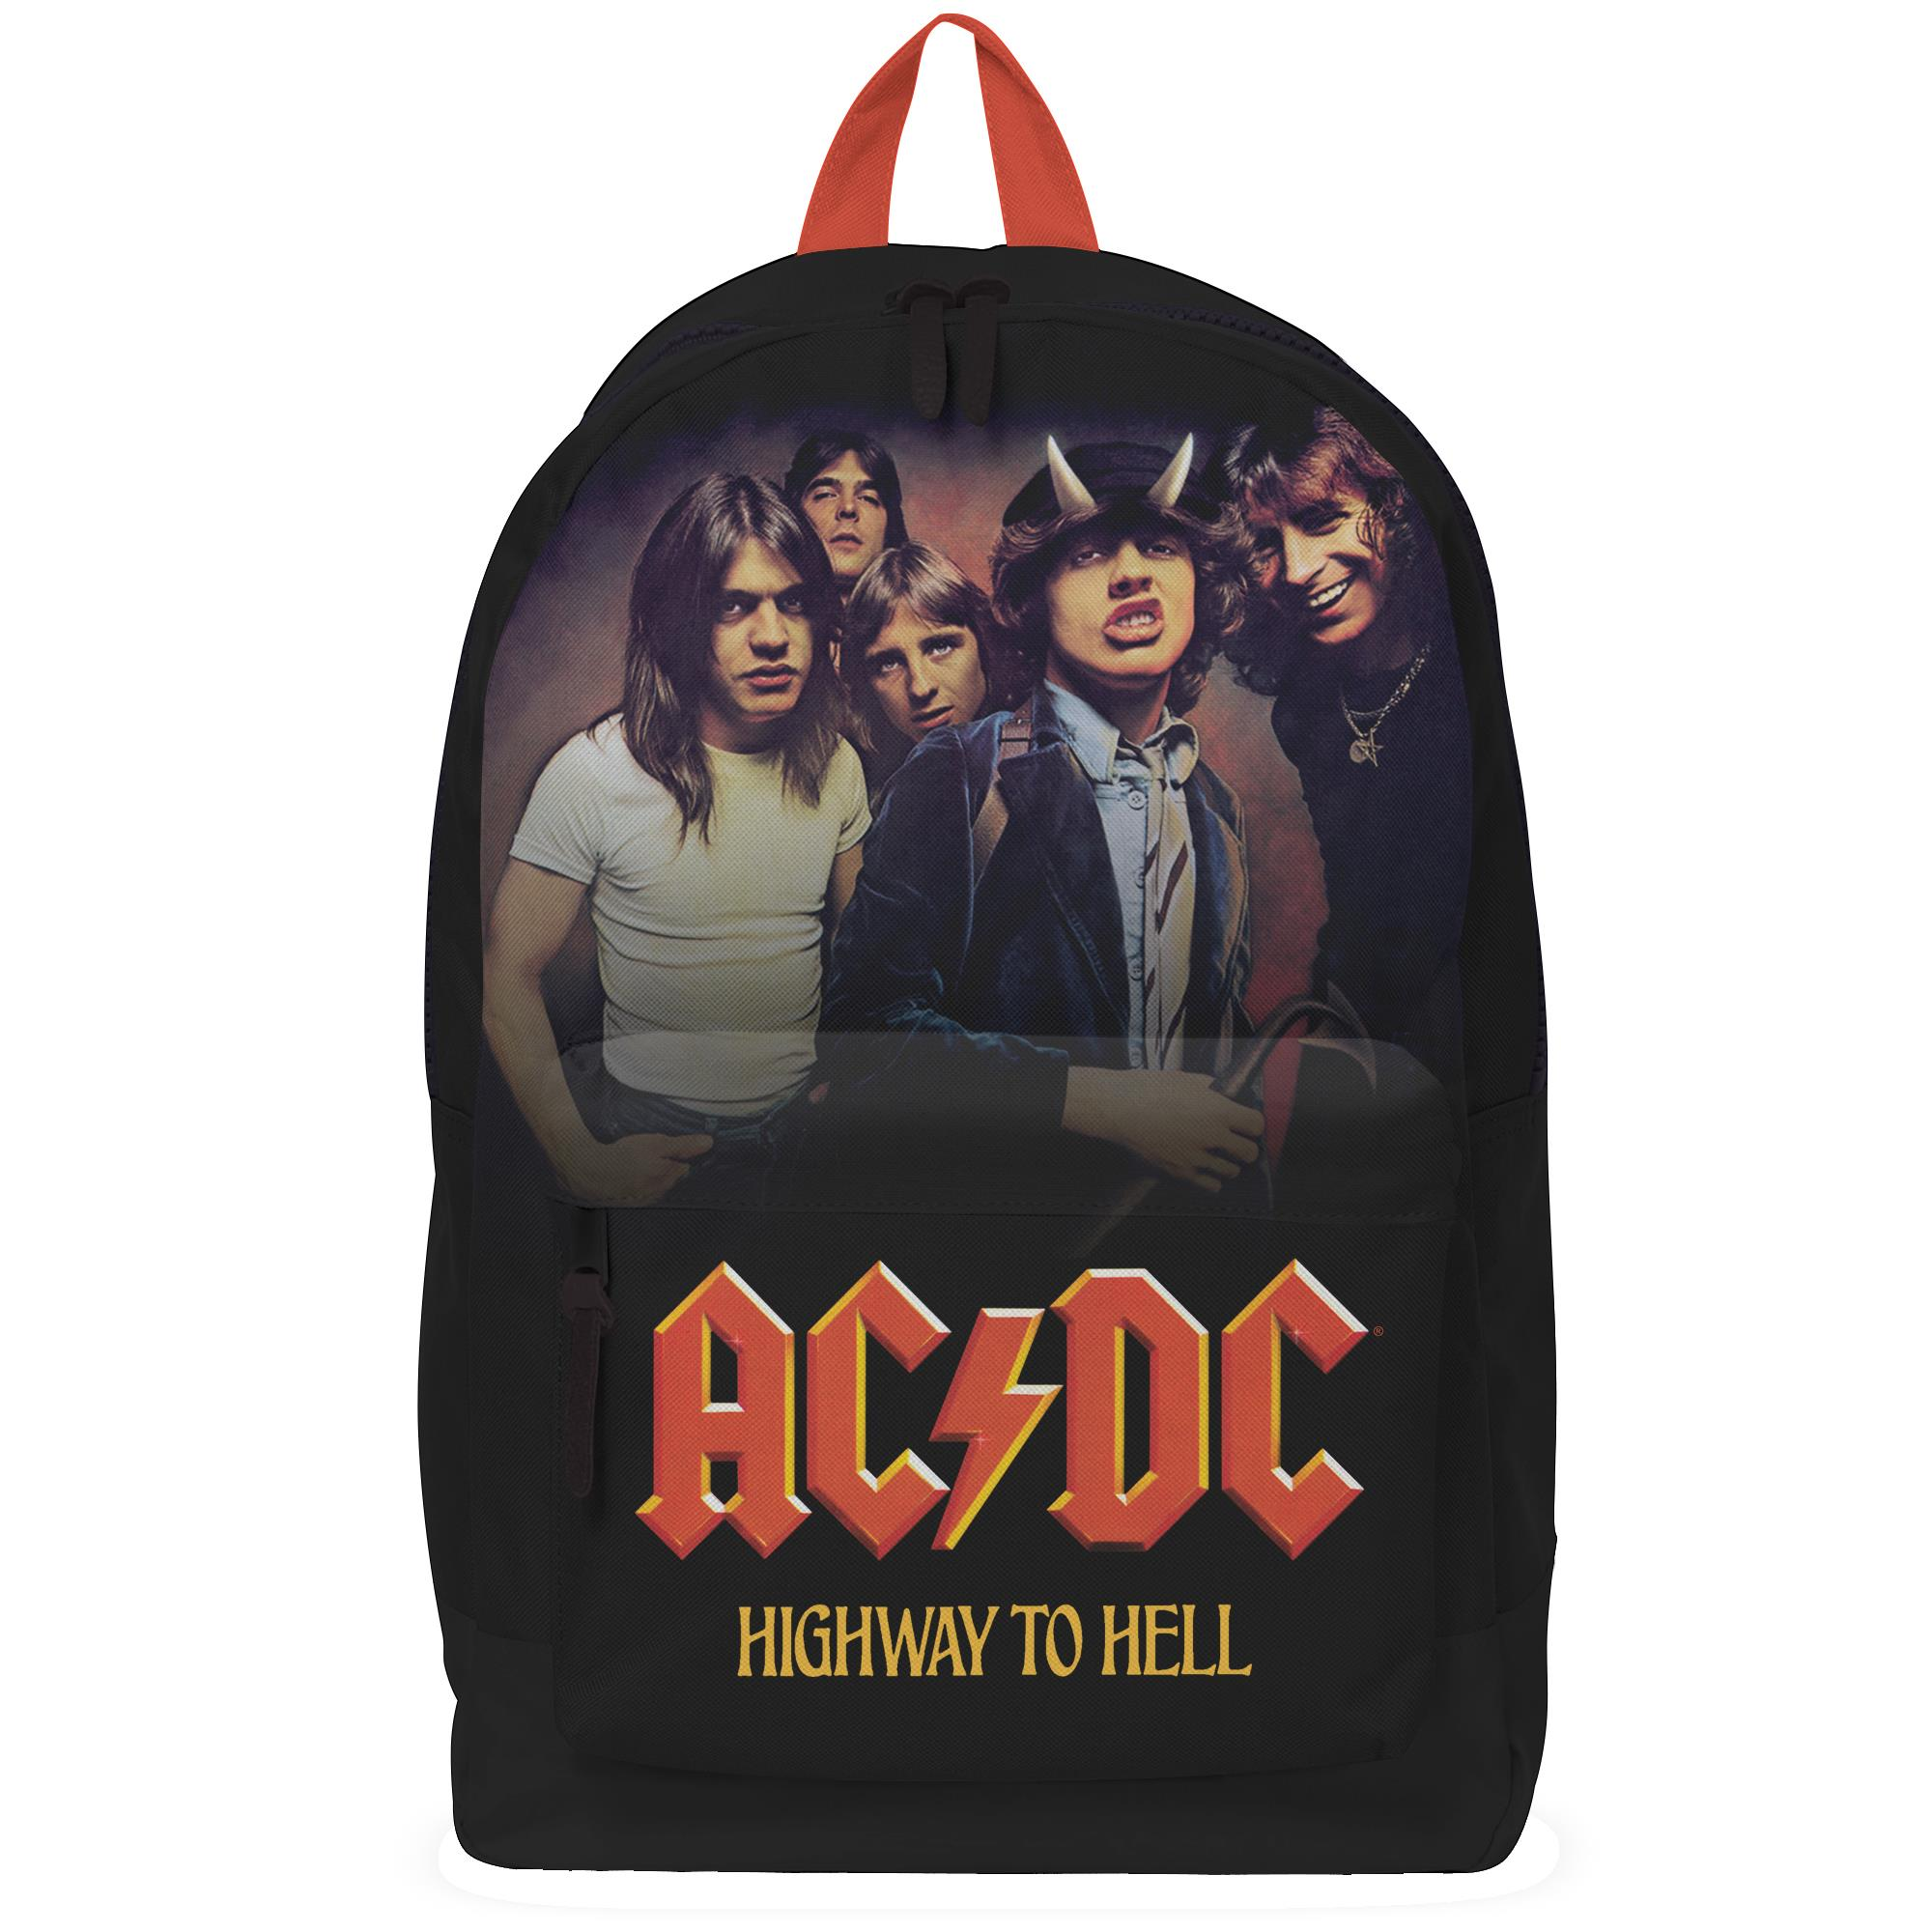 Highway To Hell Backpack Bag